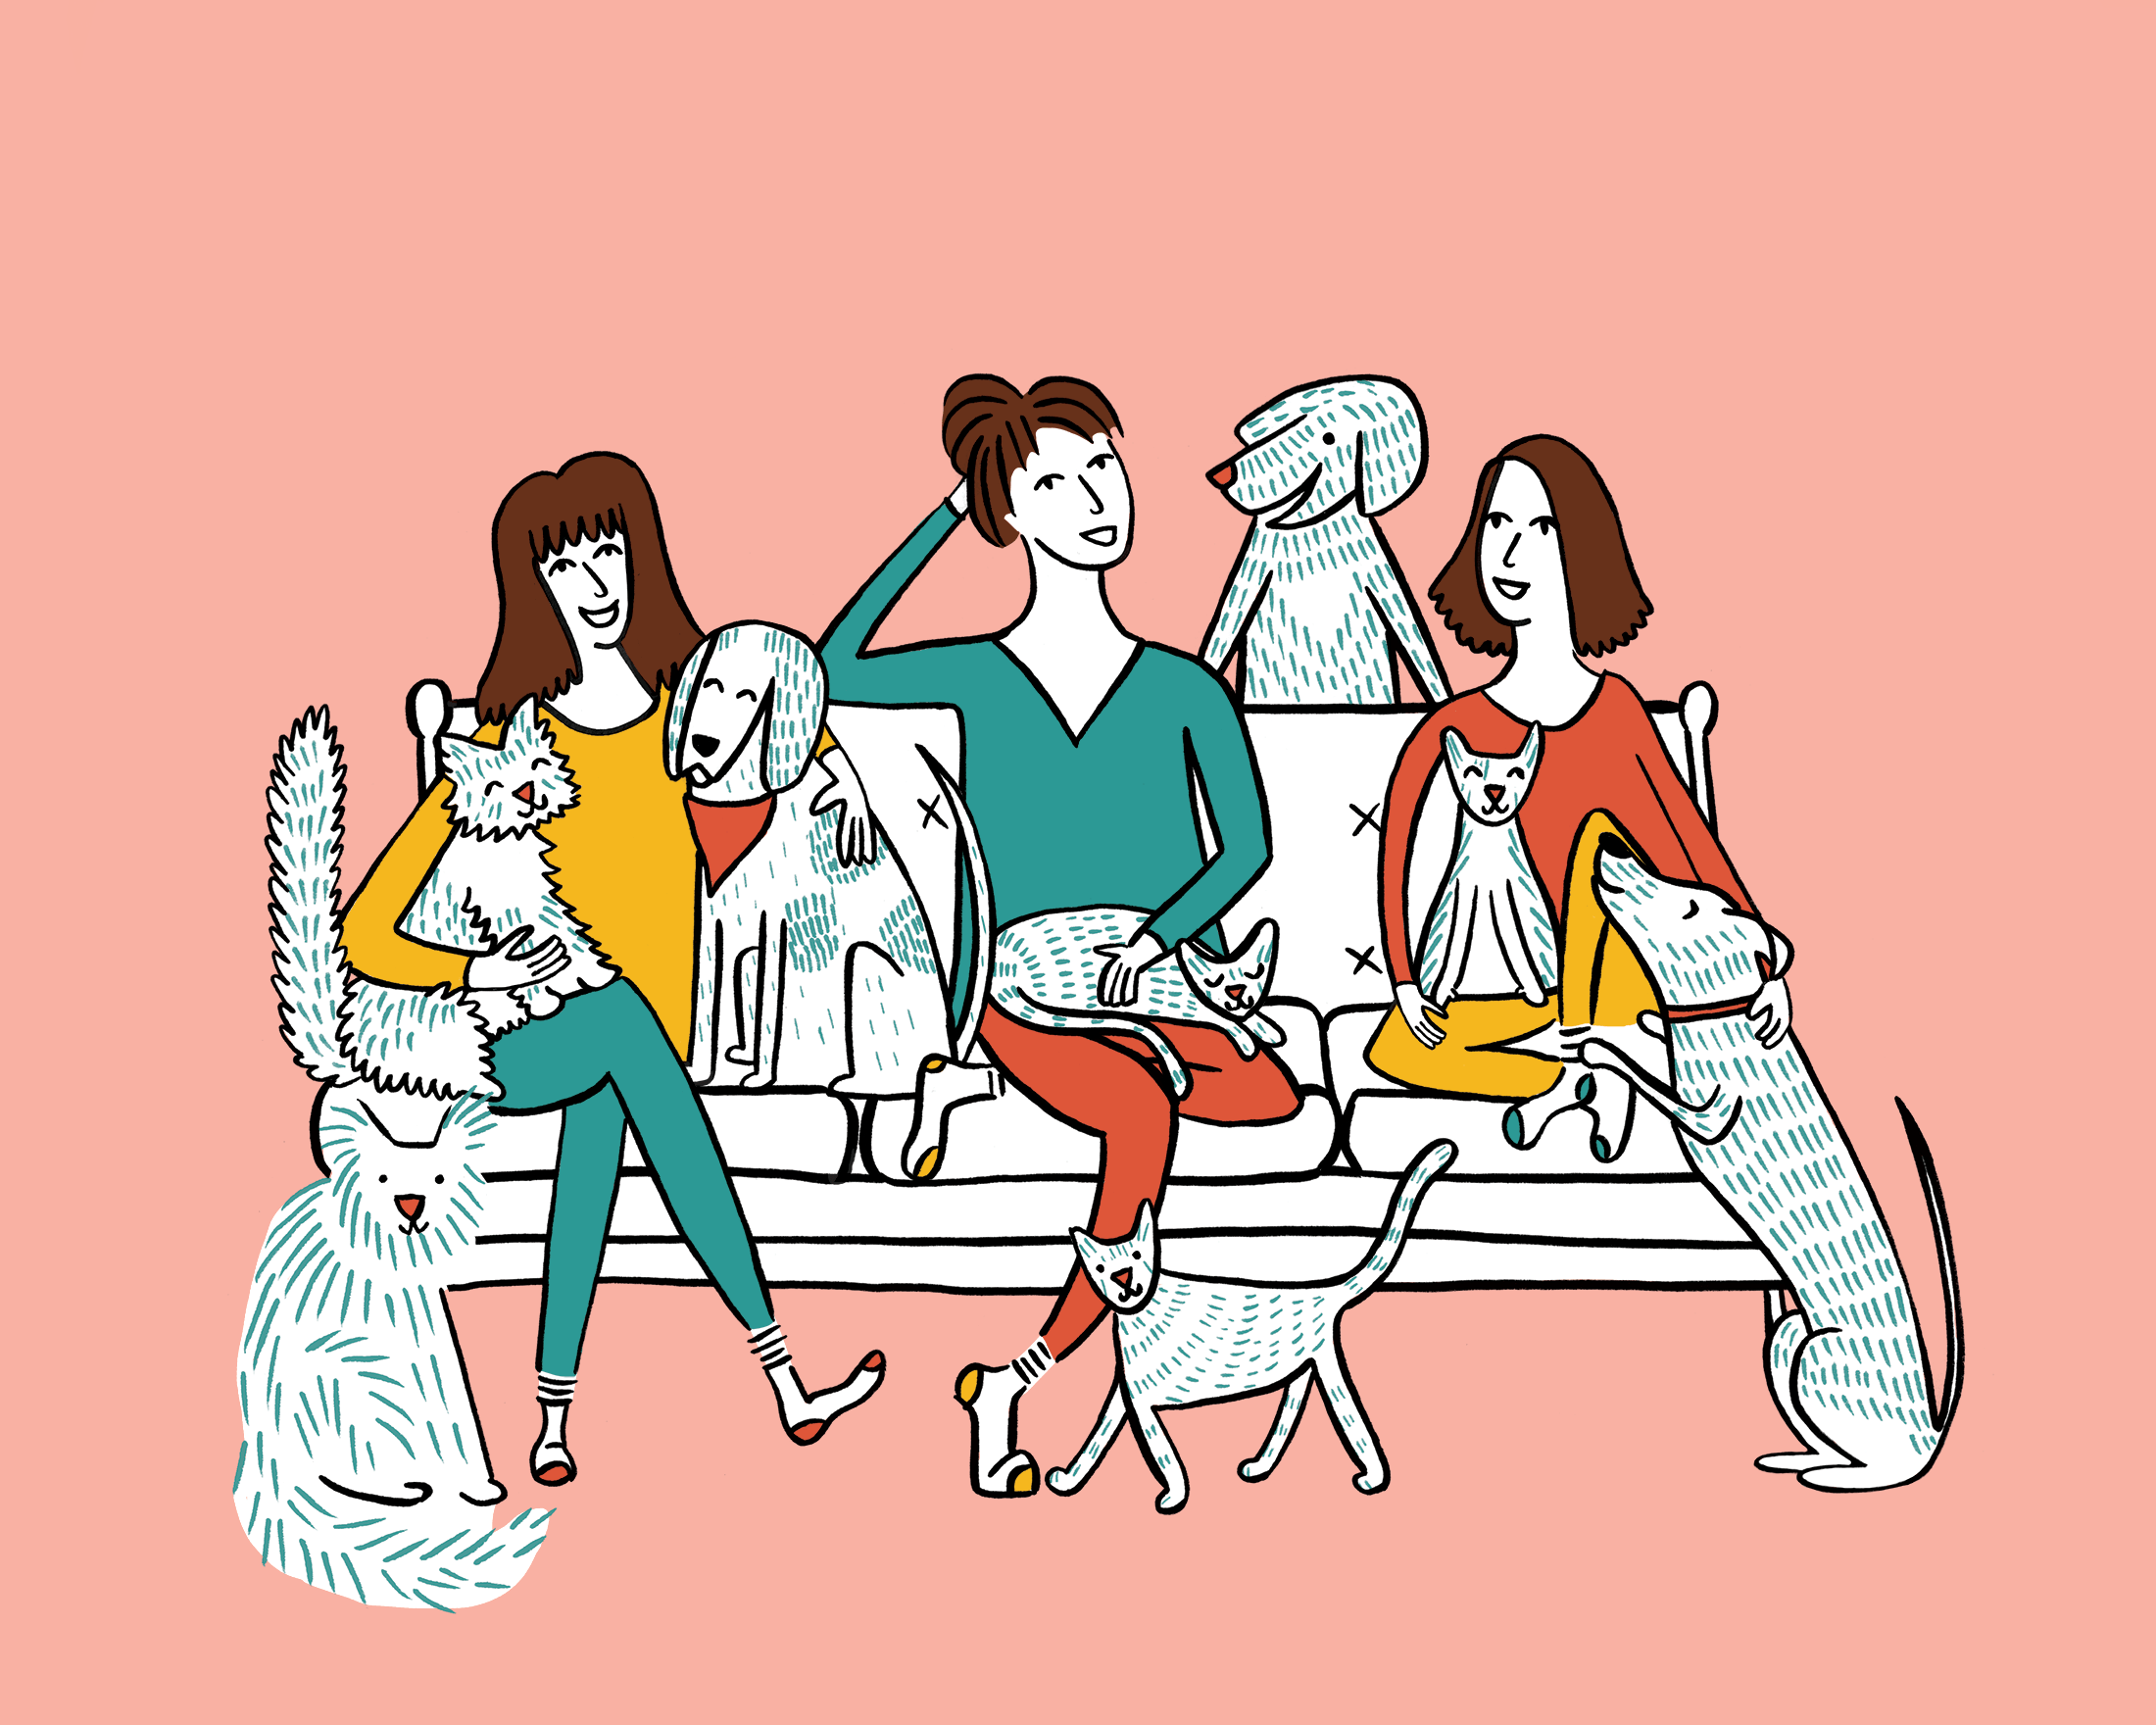 natalie-marion-family-portrait-cat-dogs-couch-happy-illustration.png